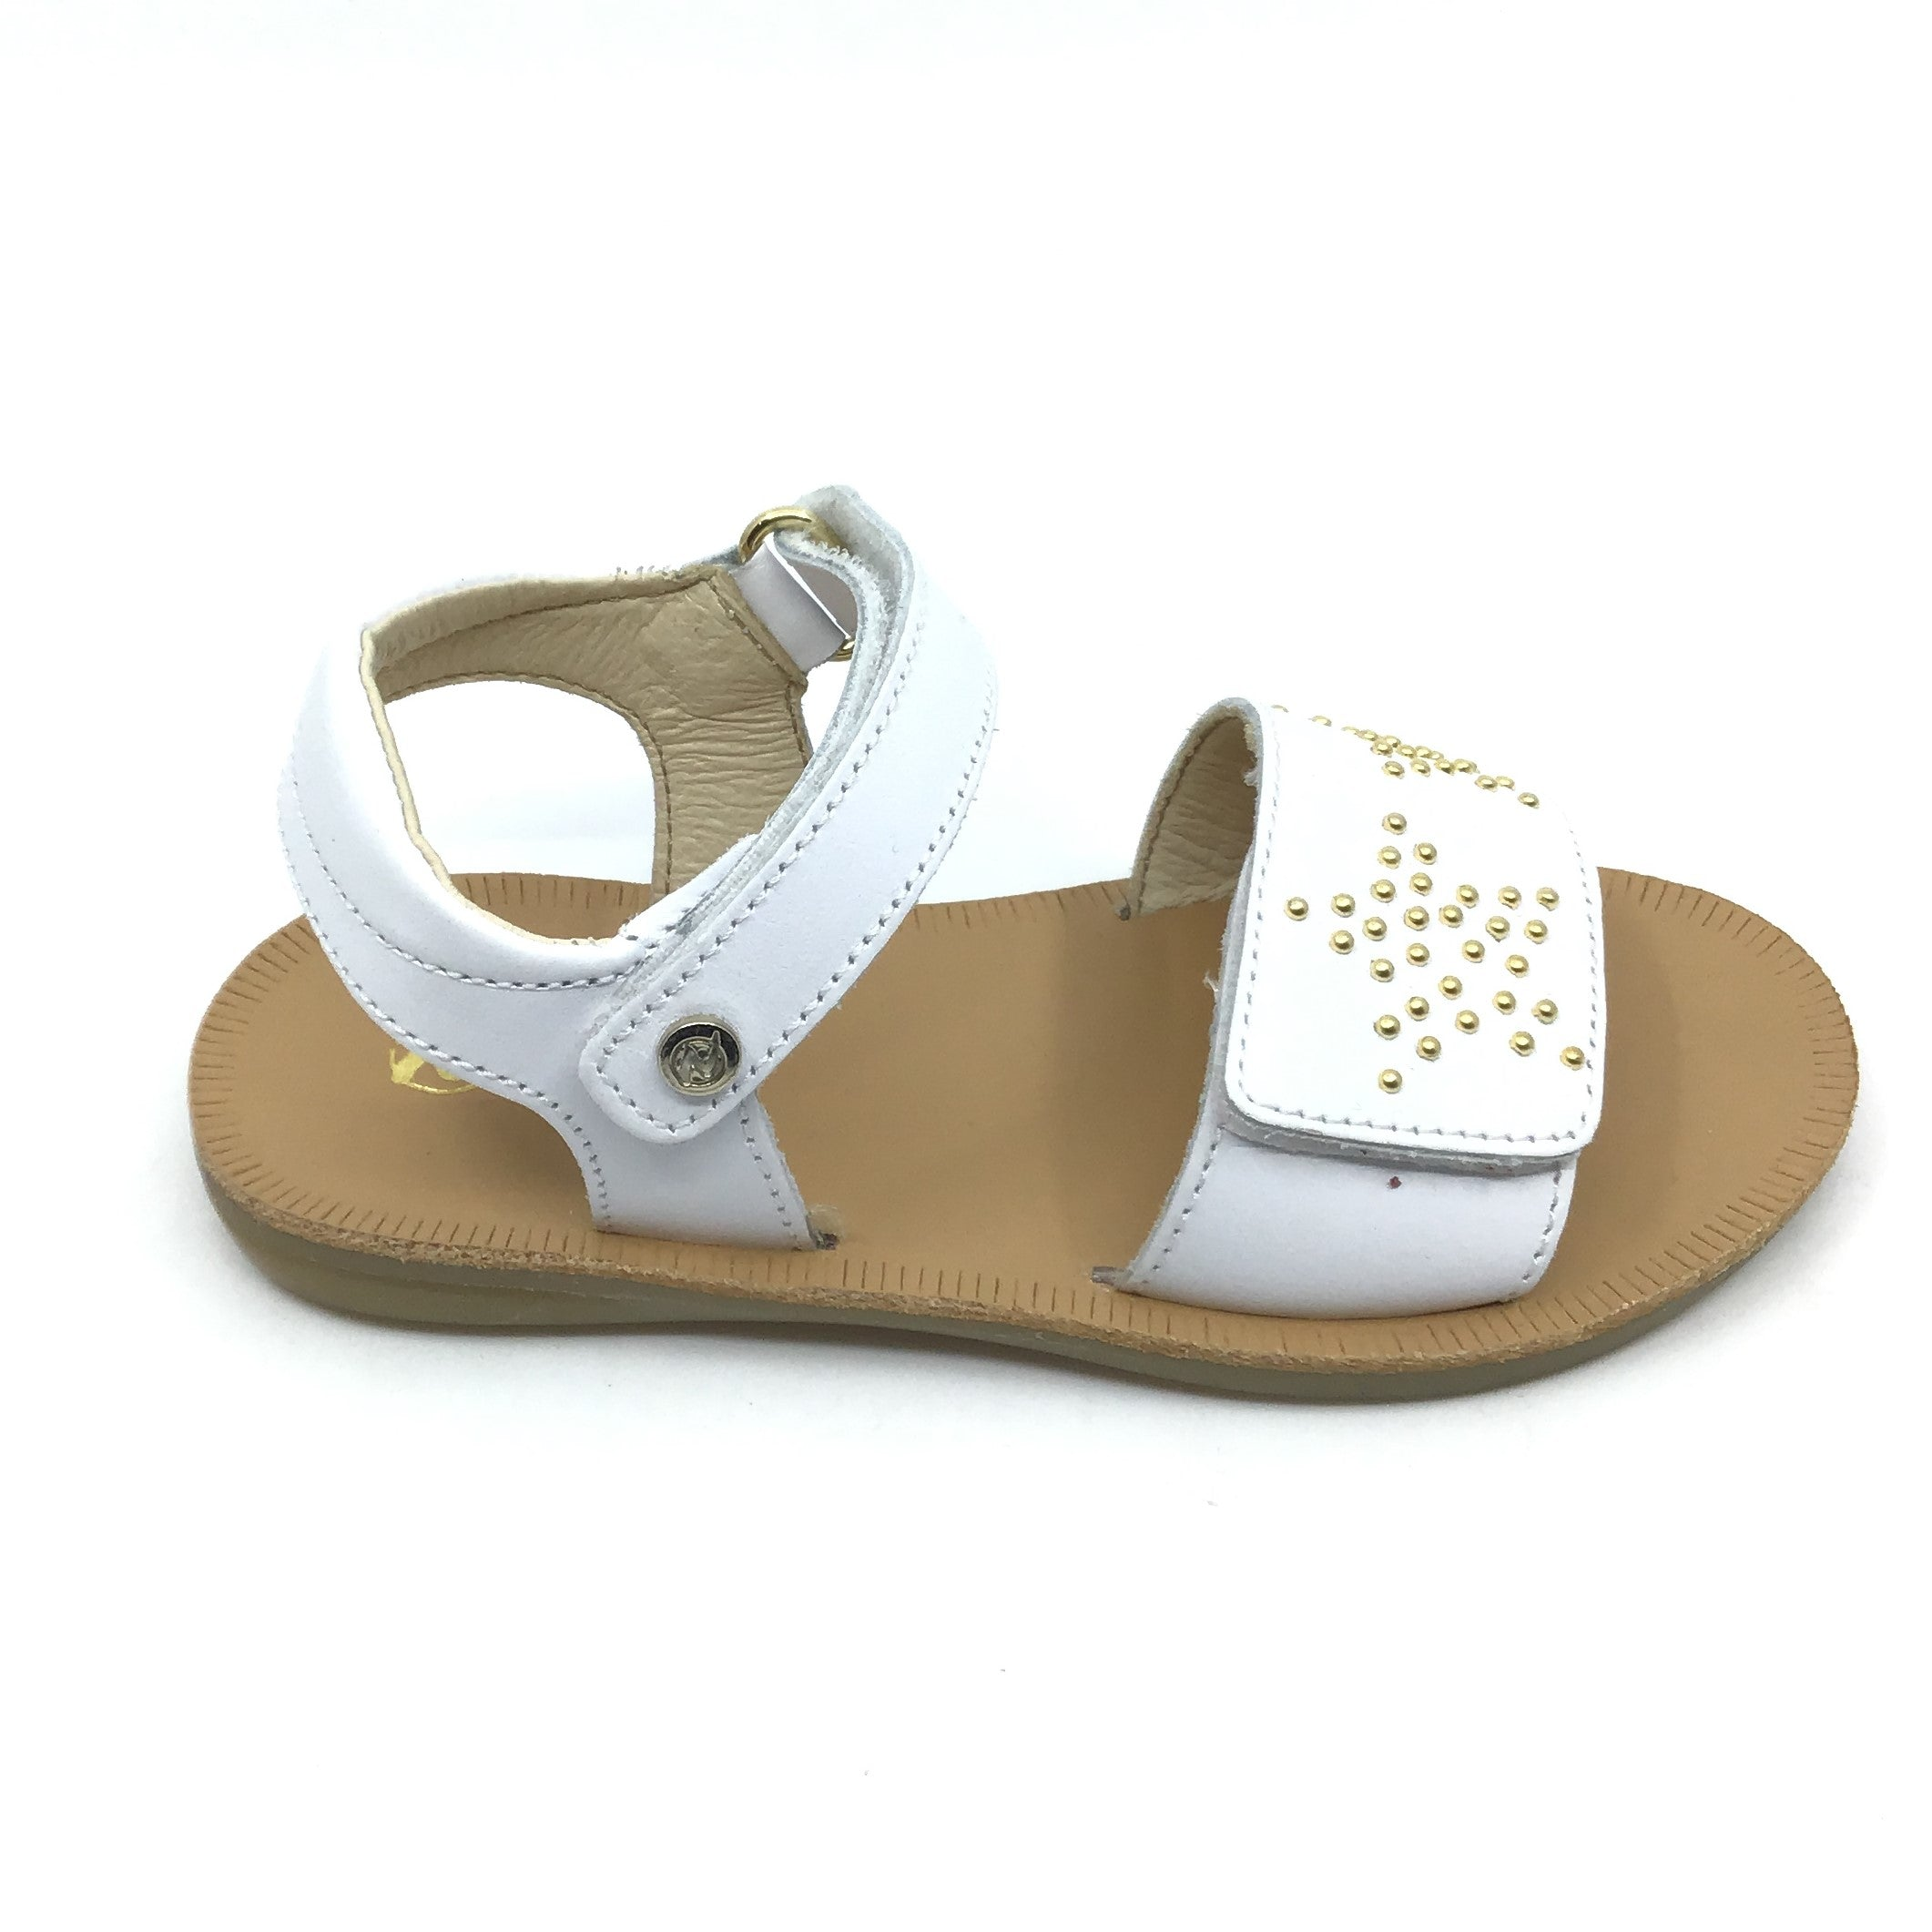 Naturino White Sandal with Studs